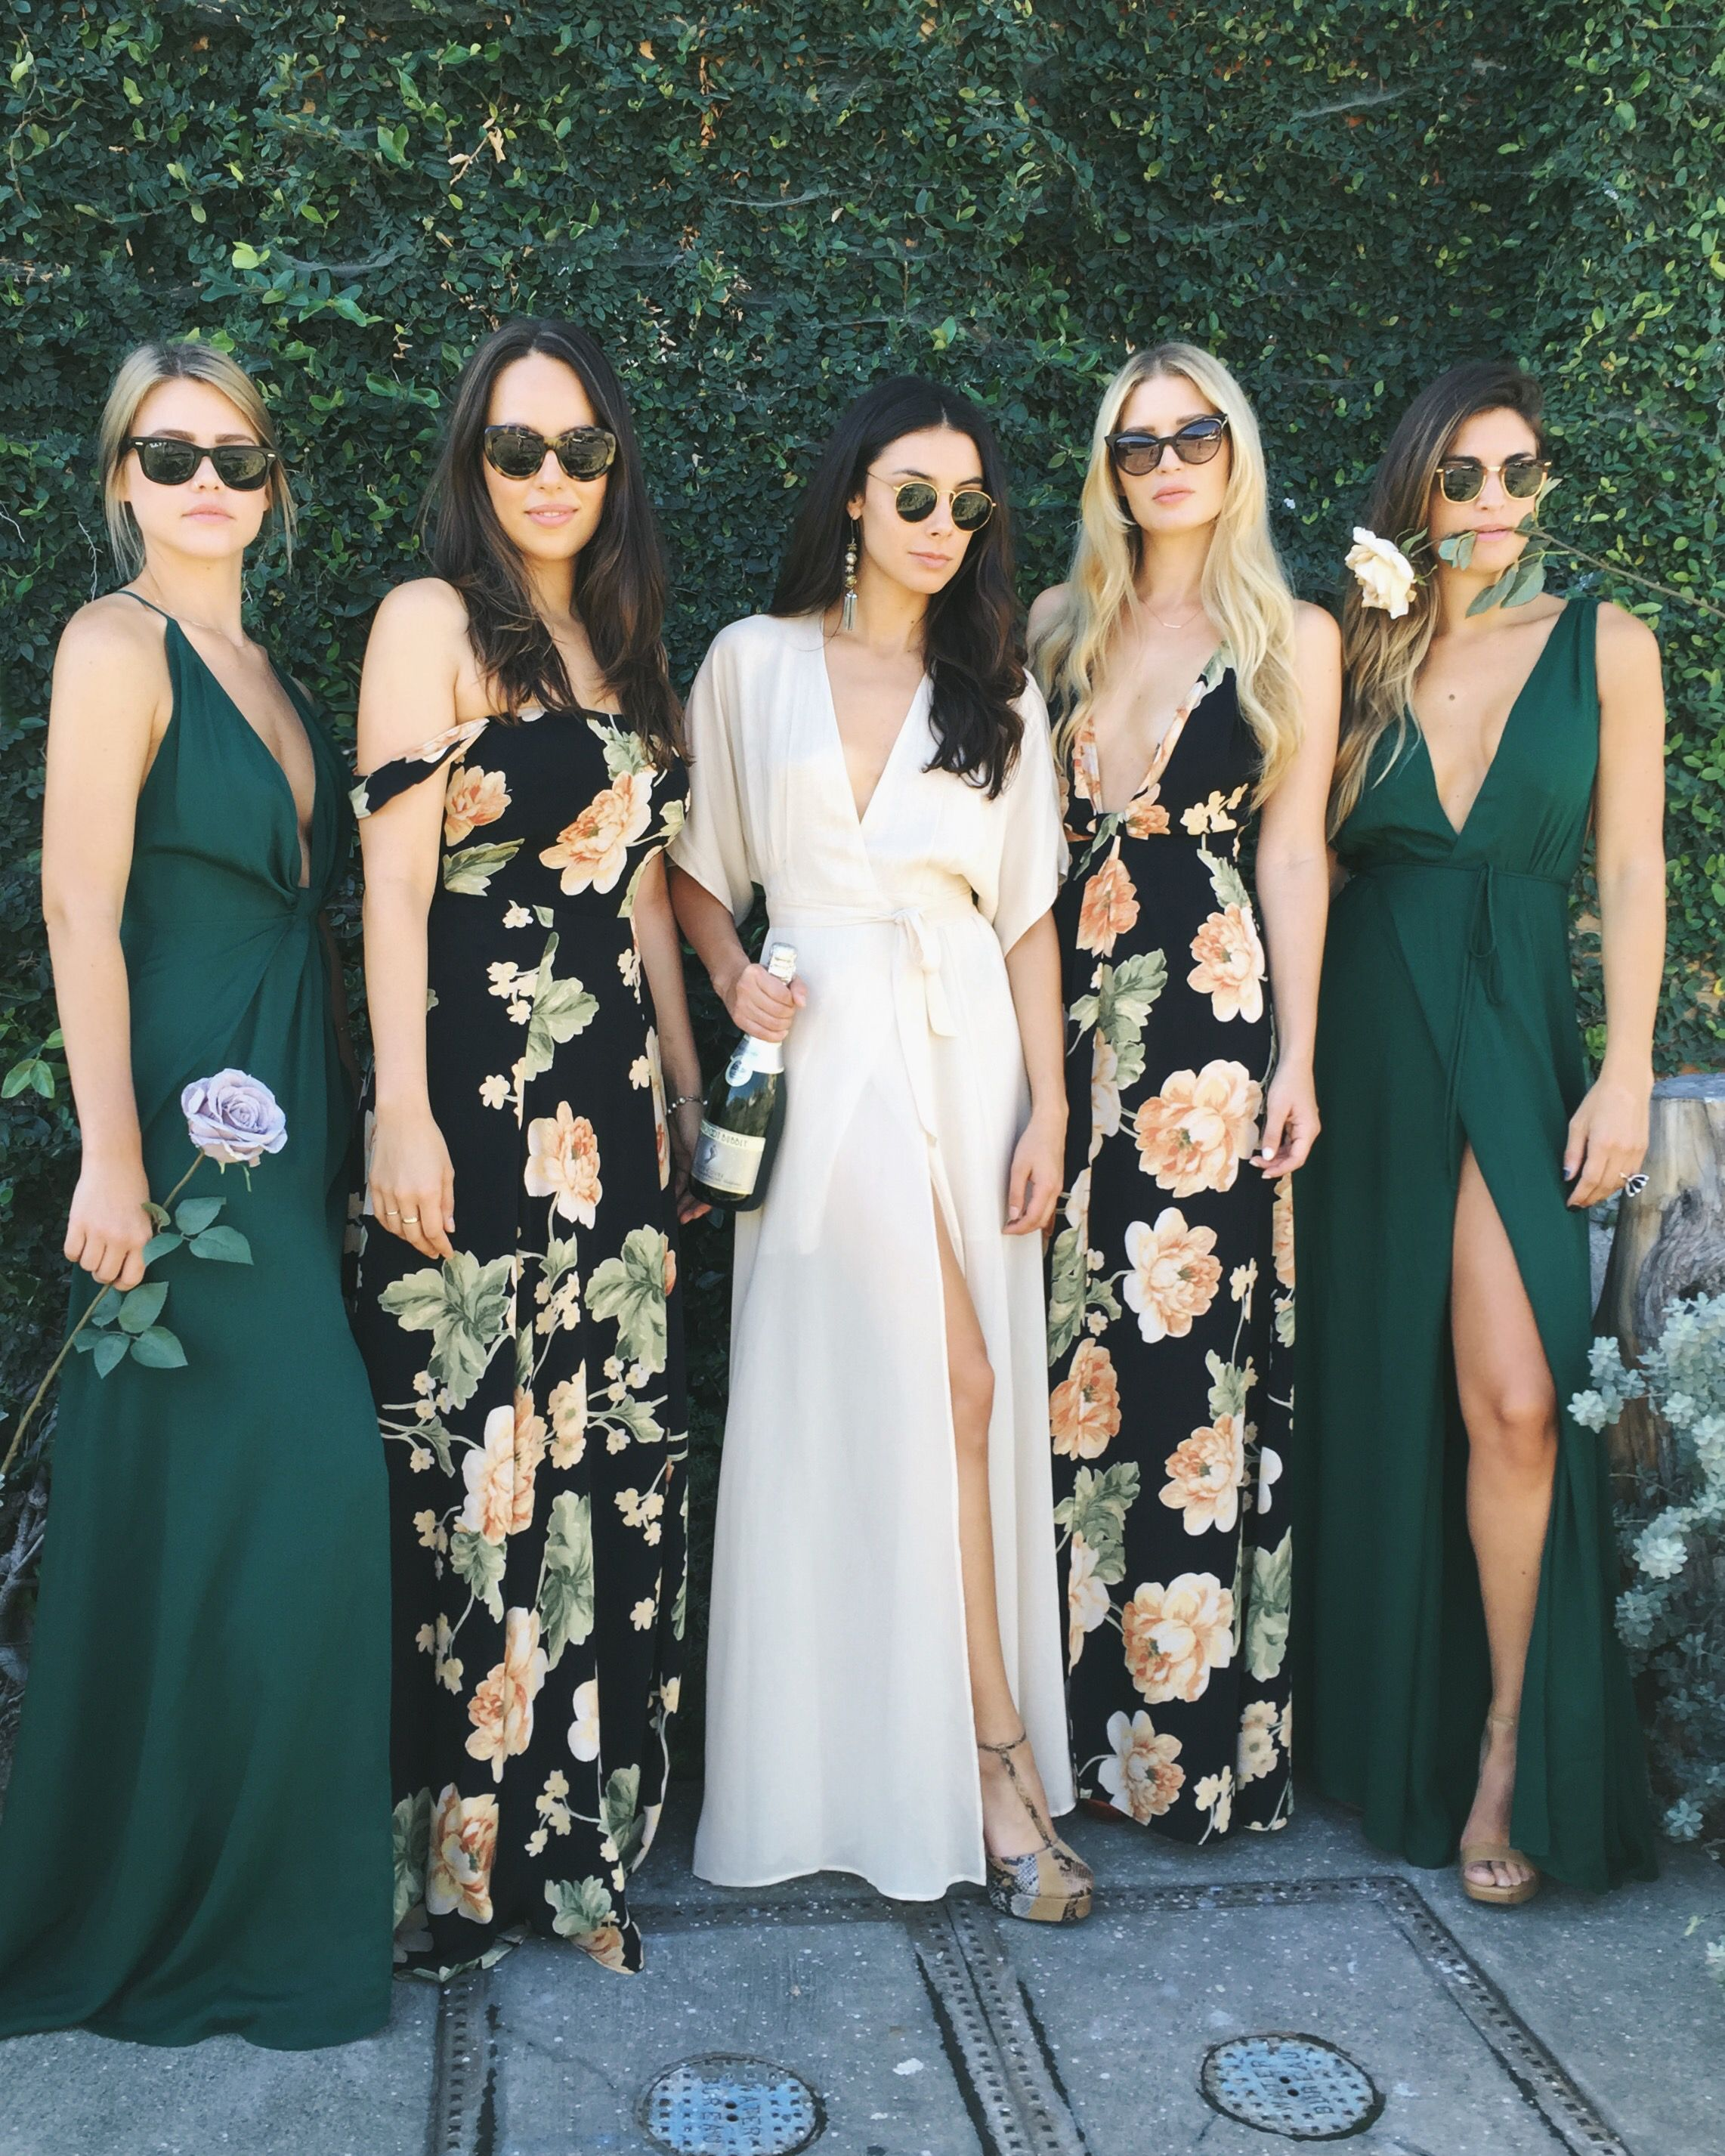 f5bf91ec33c3d Chicas usando vestidos florares Print Bridesmaid Dresses, Forest Green Bridesmaid  Dresses, Green Bridesmaids,